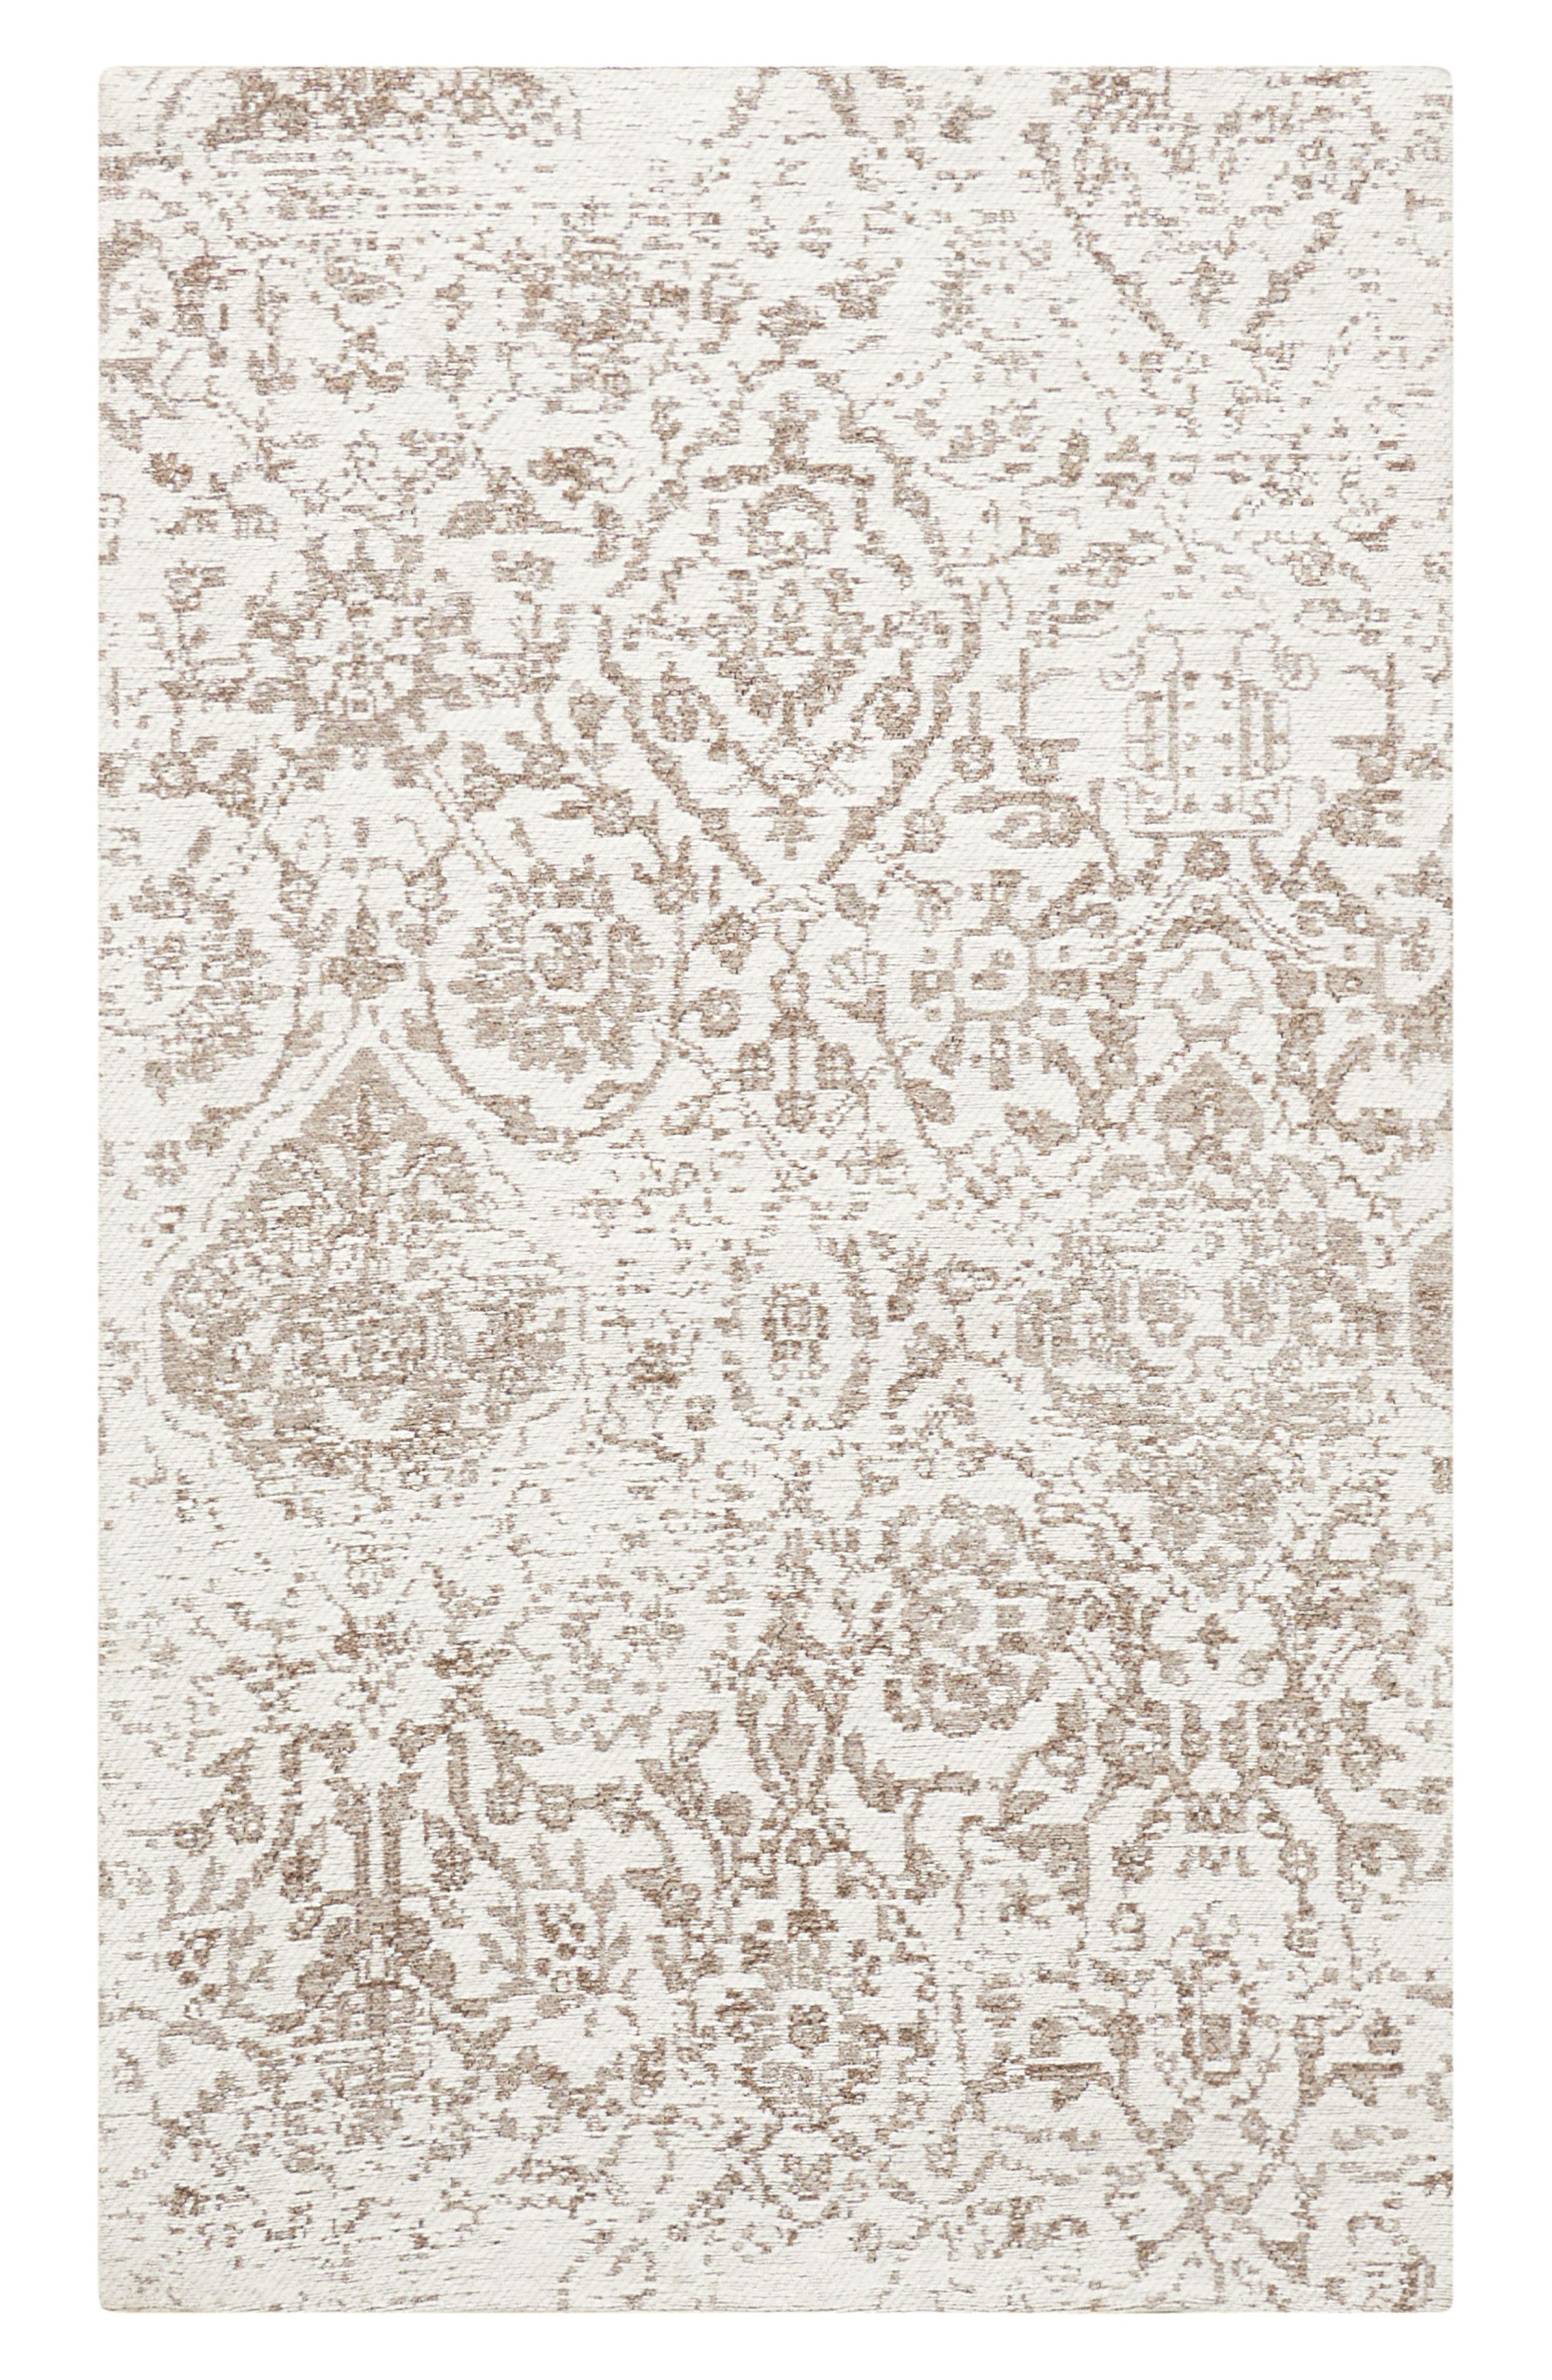 Damask Rug,                             Alternate thumbnail 2, color,                             020